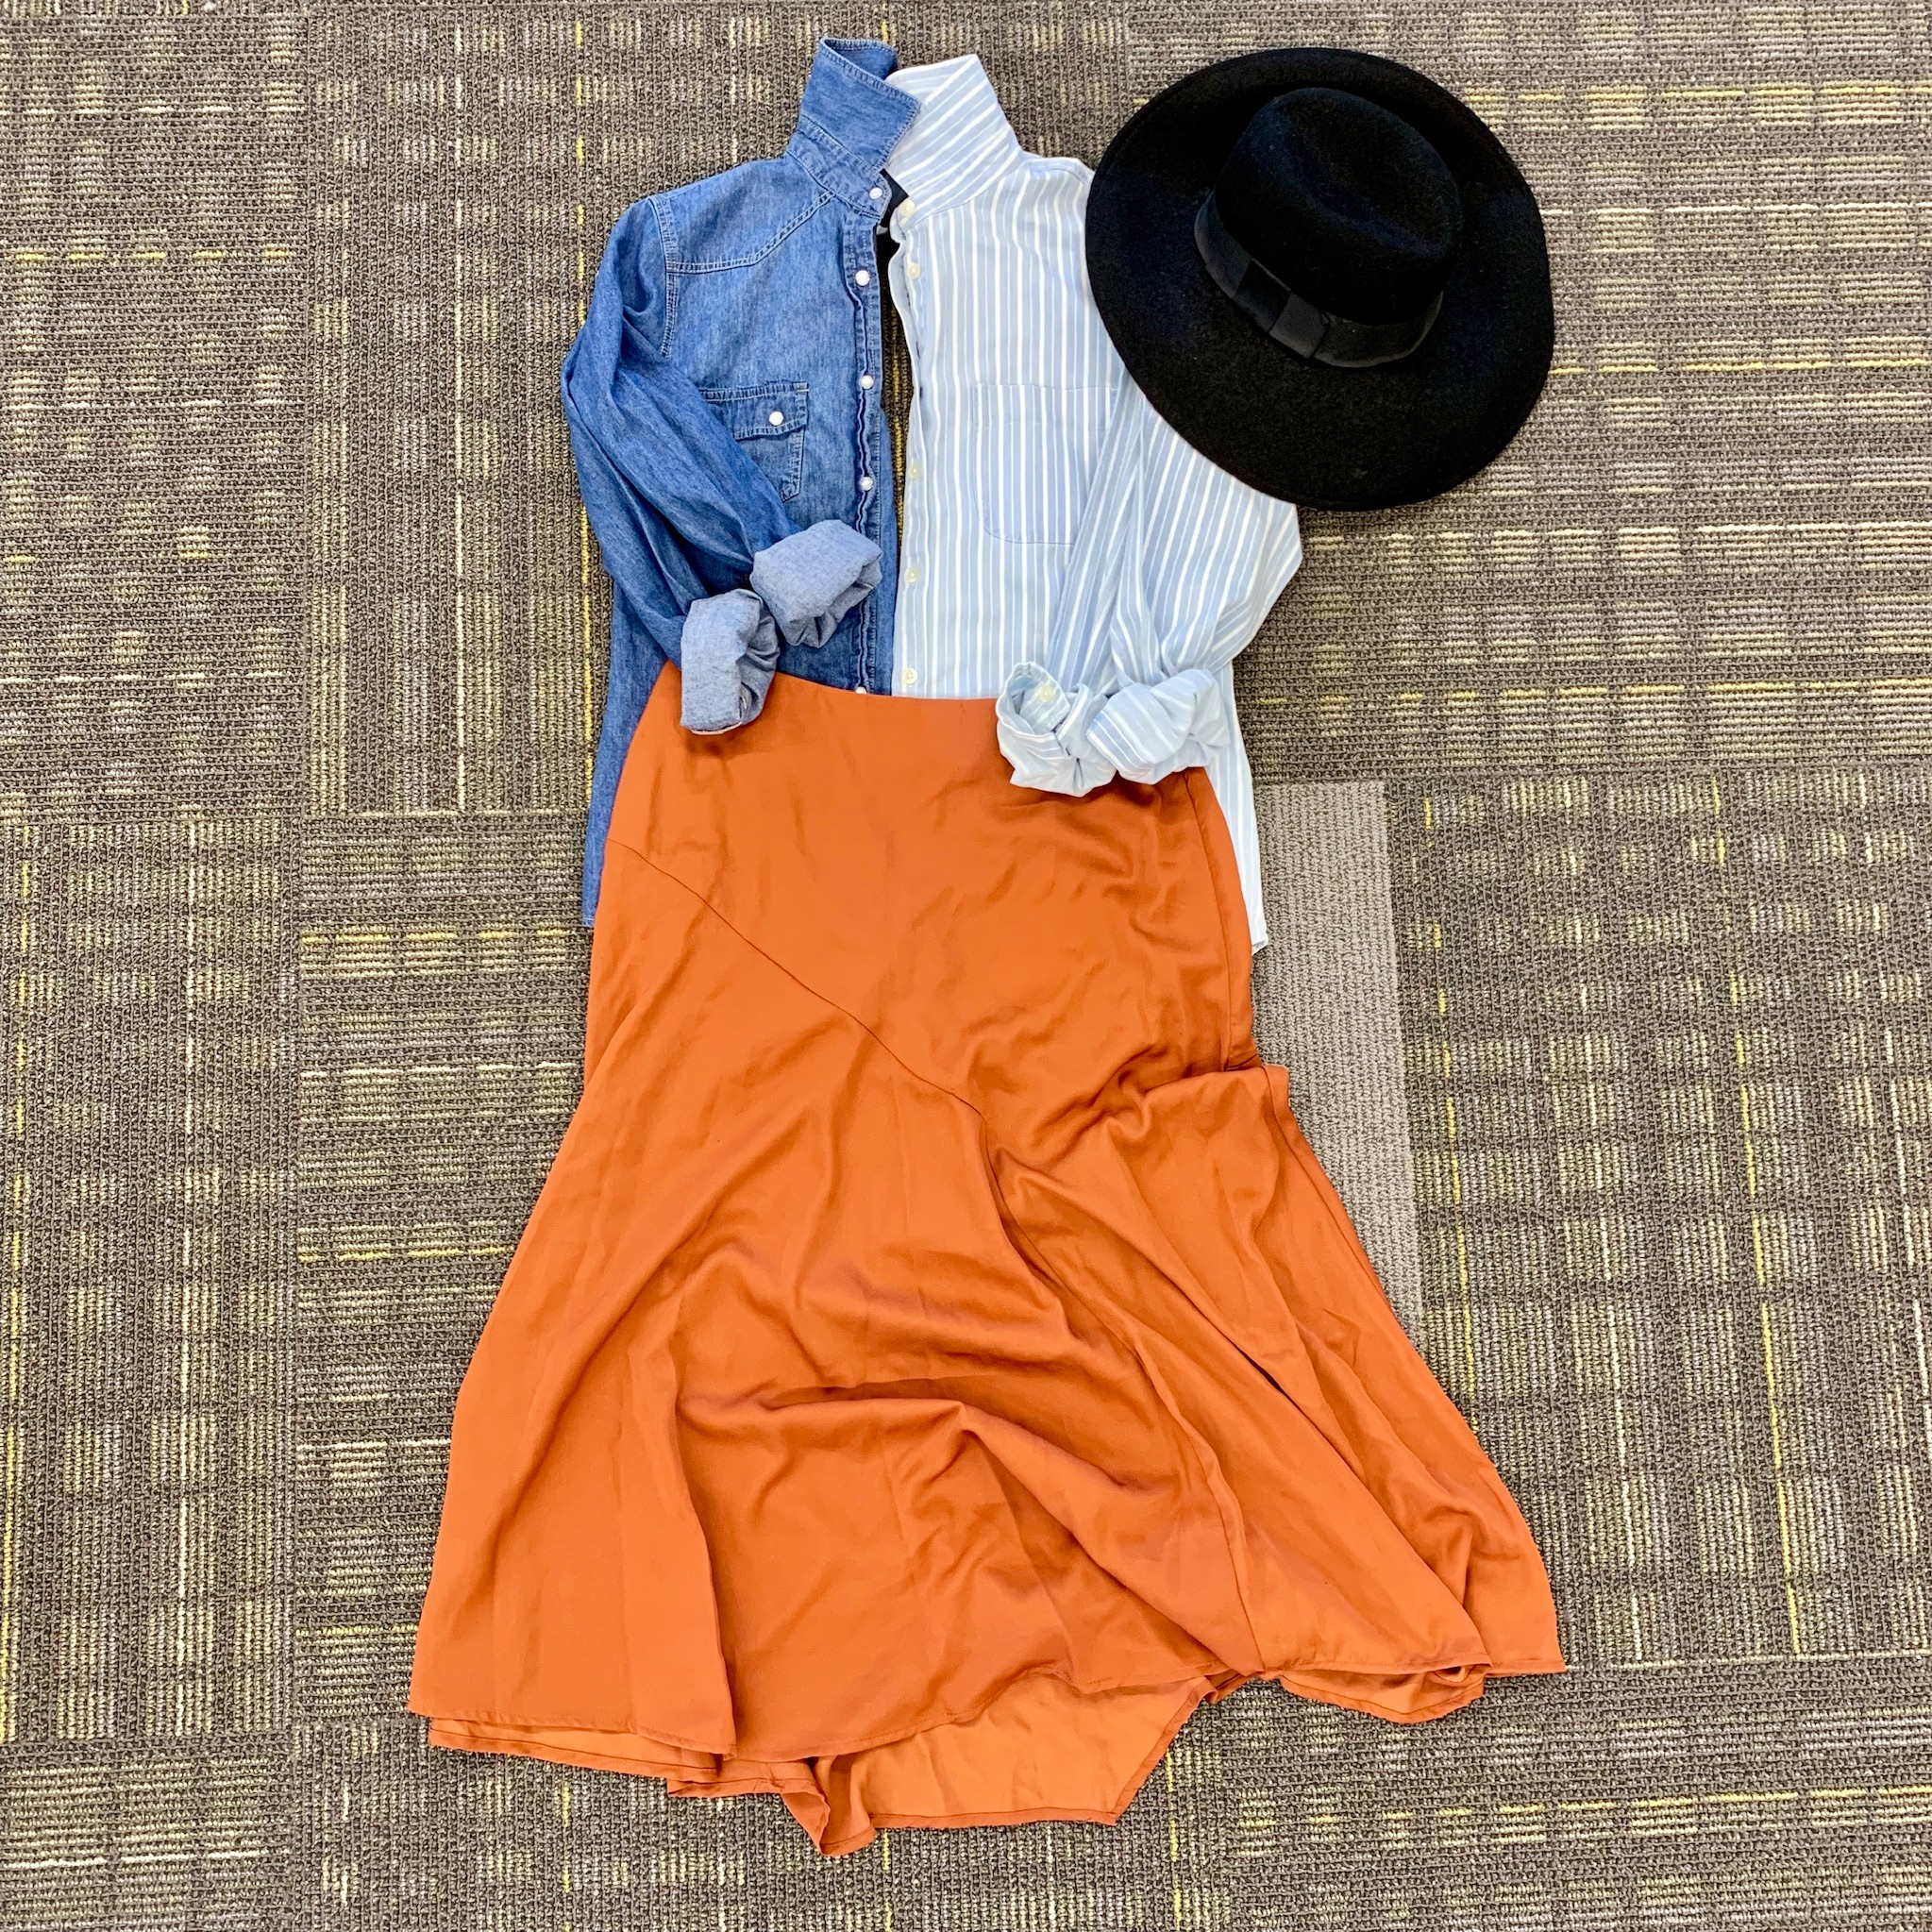 rust skirt with chambray button-downs and felt wide-brim hat